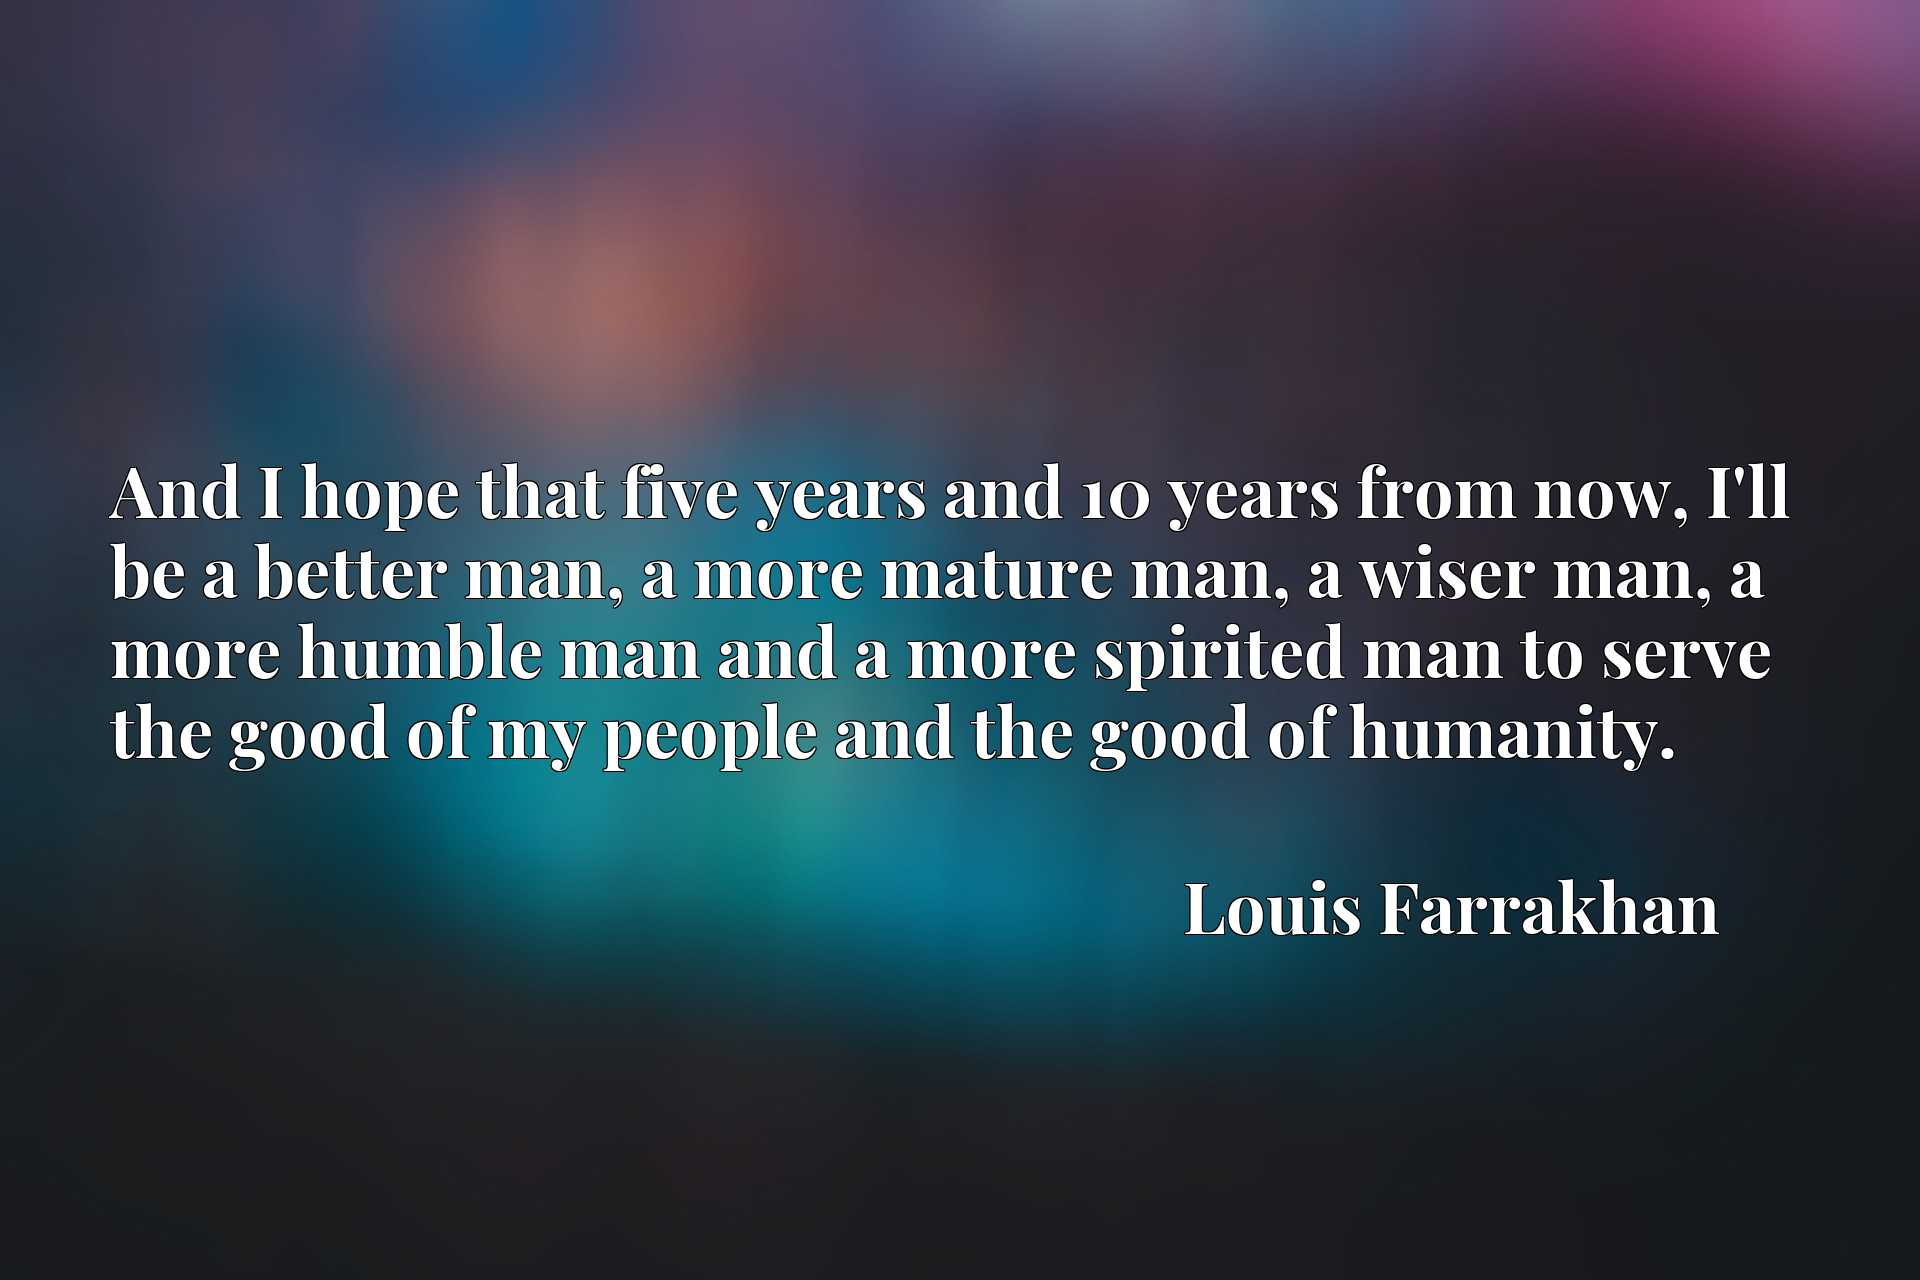 And I hope that five years and 10 years from now, I'll be a better man, a more mature man, a wiser man, a more humble man and a more spirited man to serve the good of my people and the good of humanity.